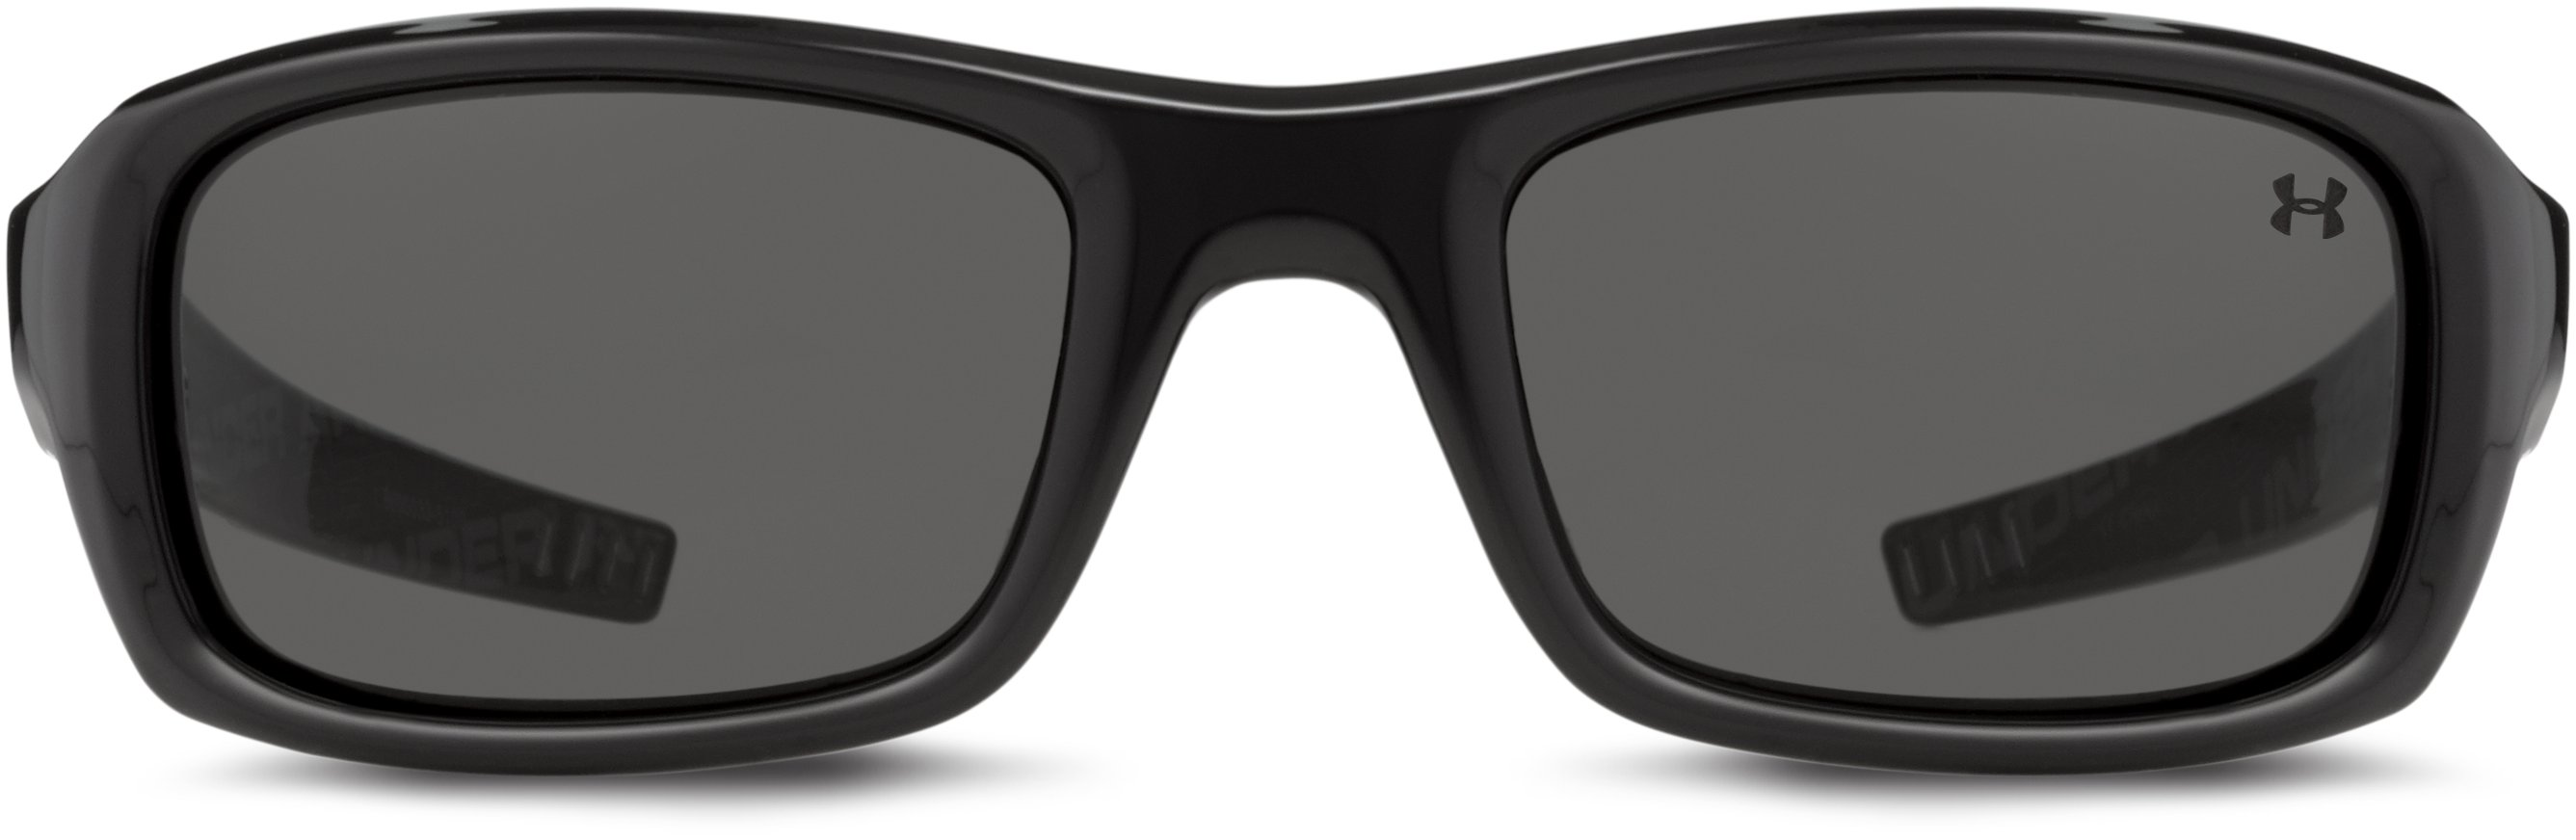 UA Surge Sunglasses, Shiny Black With Print,